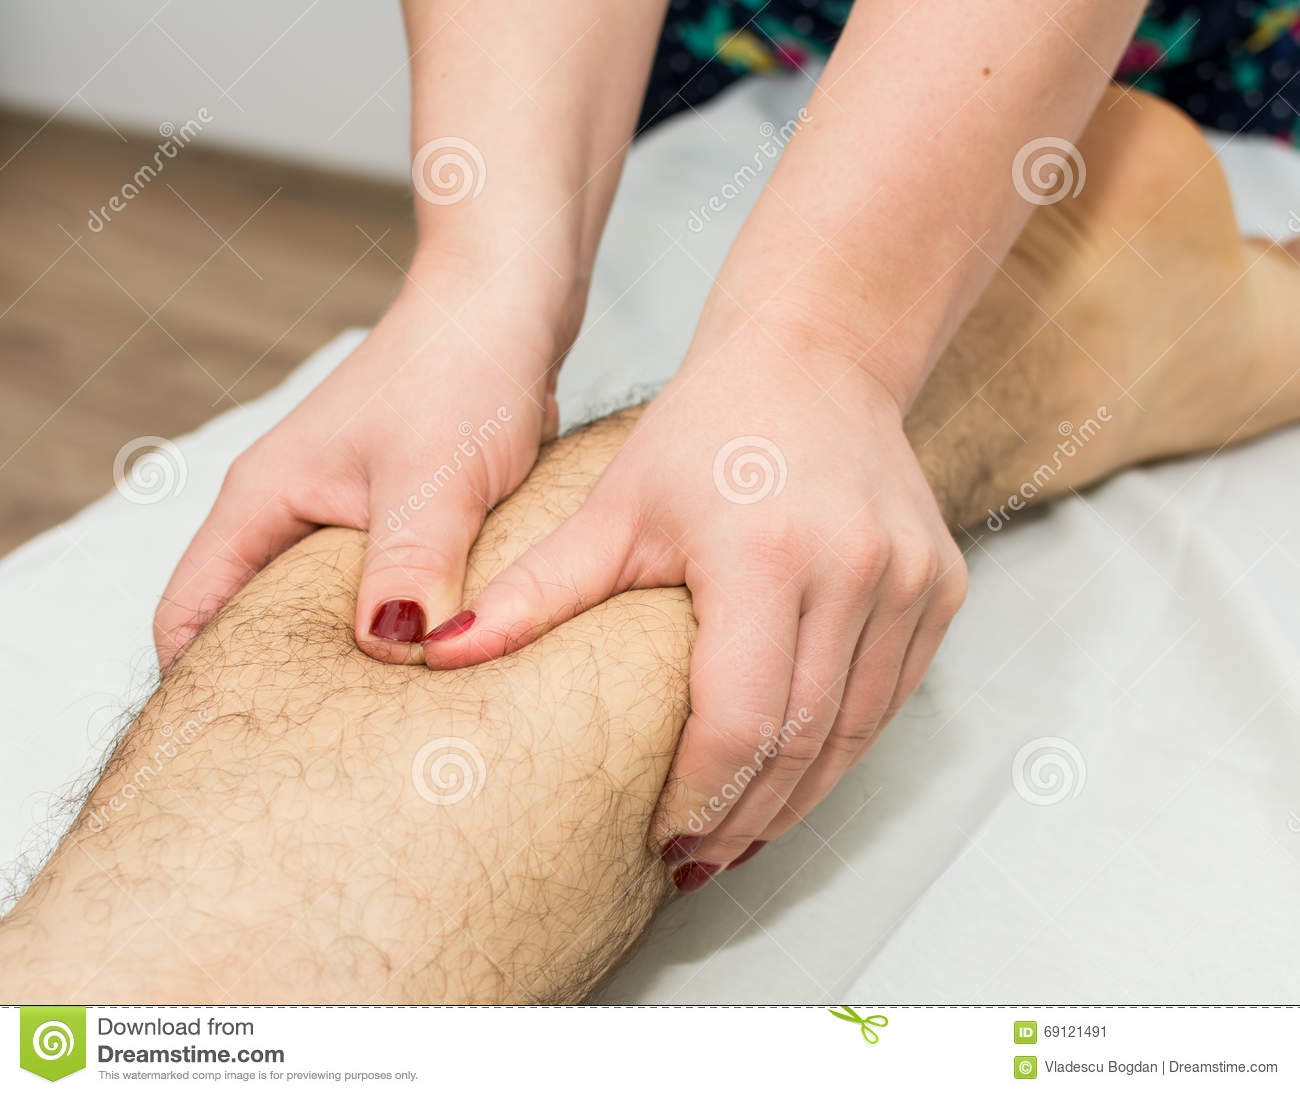 how to give a woman a foot massage